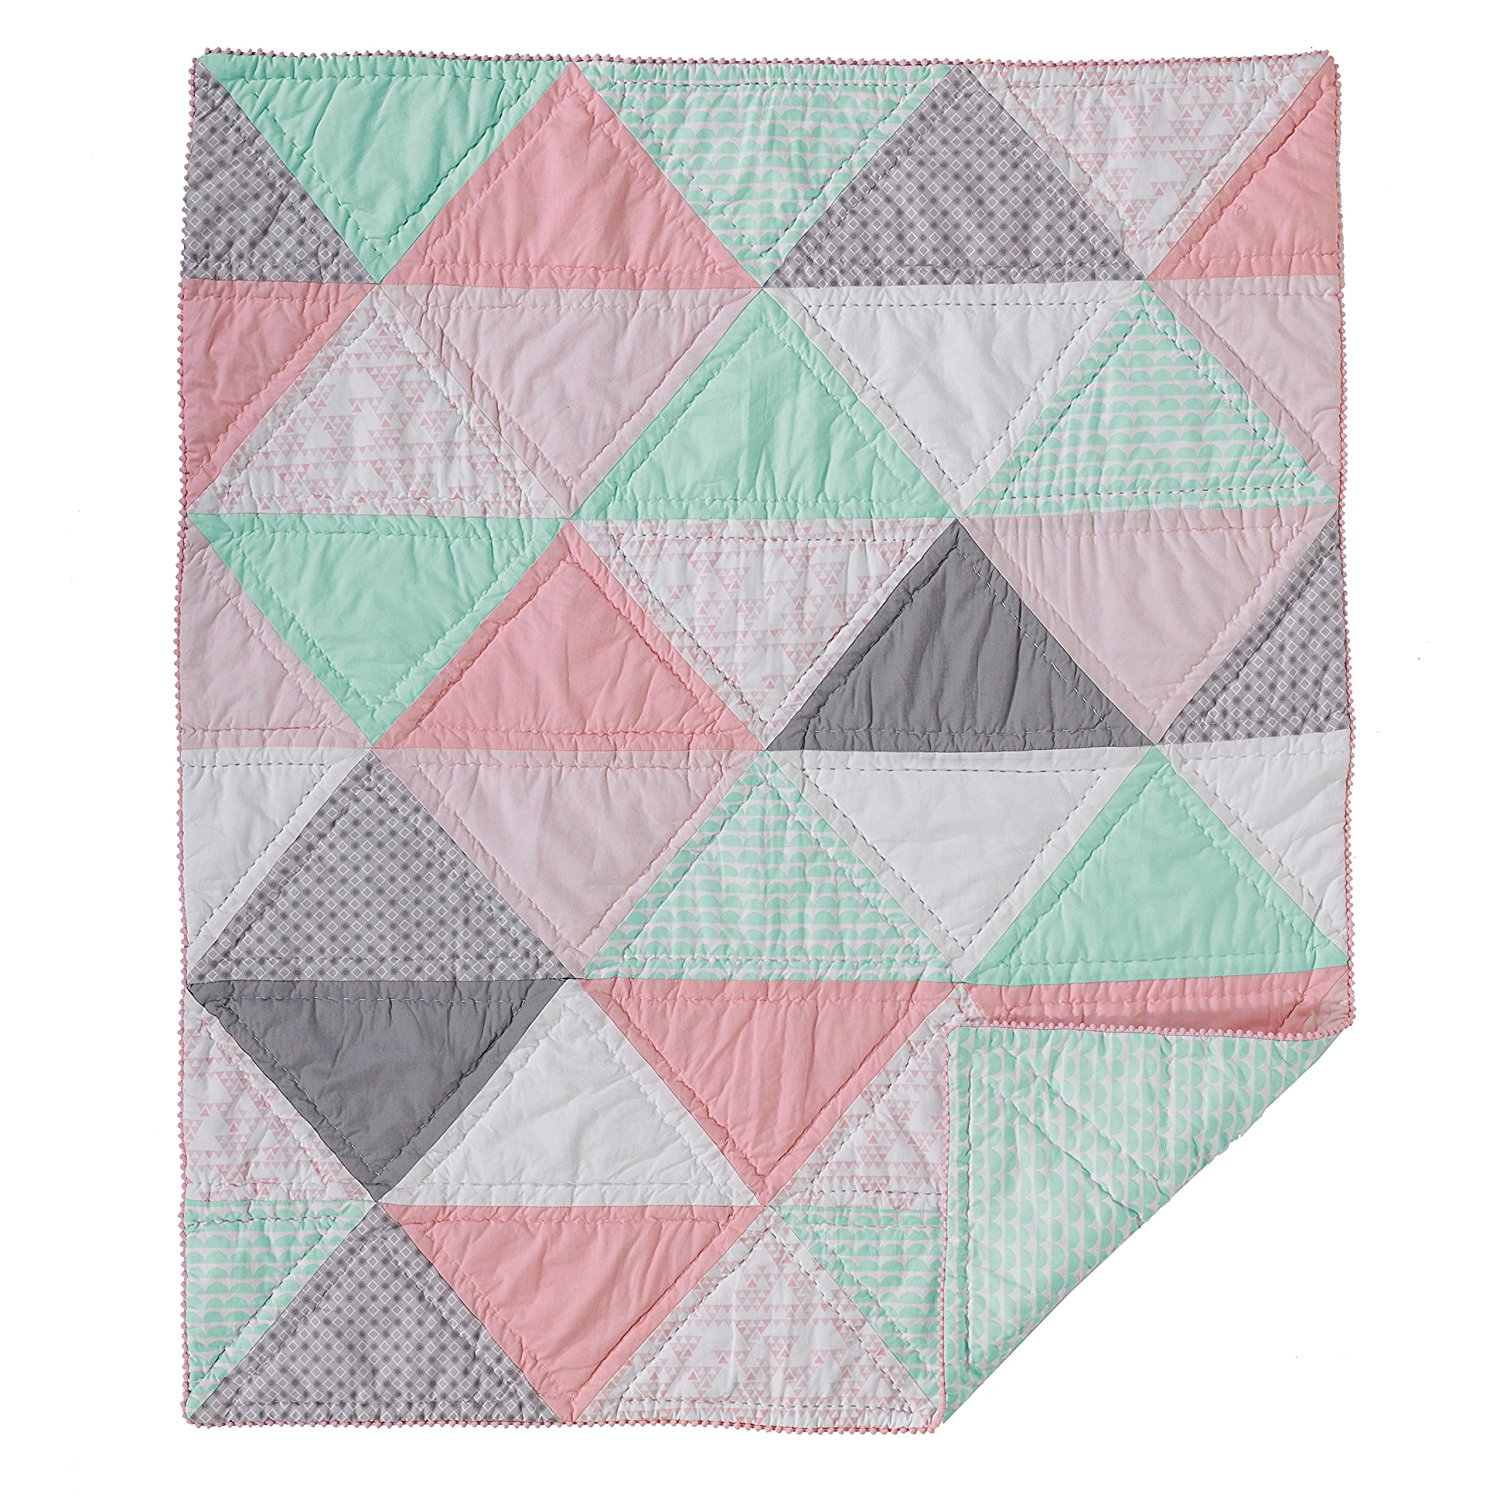 Lolli Living Sparrow - Cotton Filled Comforter - Triangle (Patchwork)